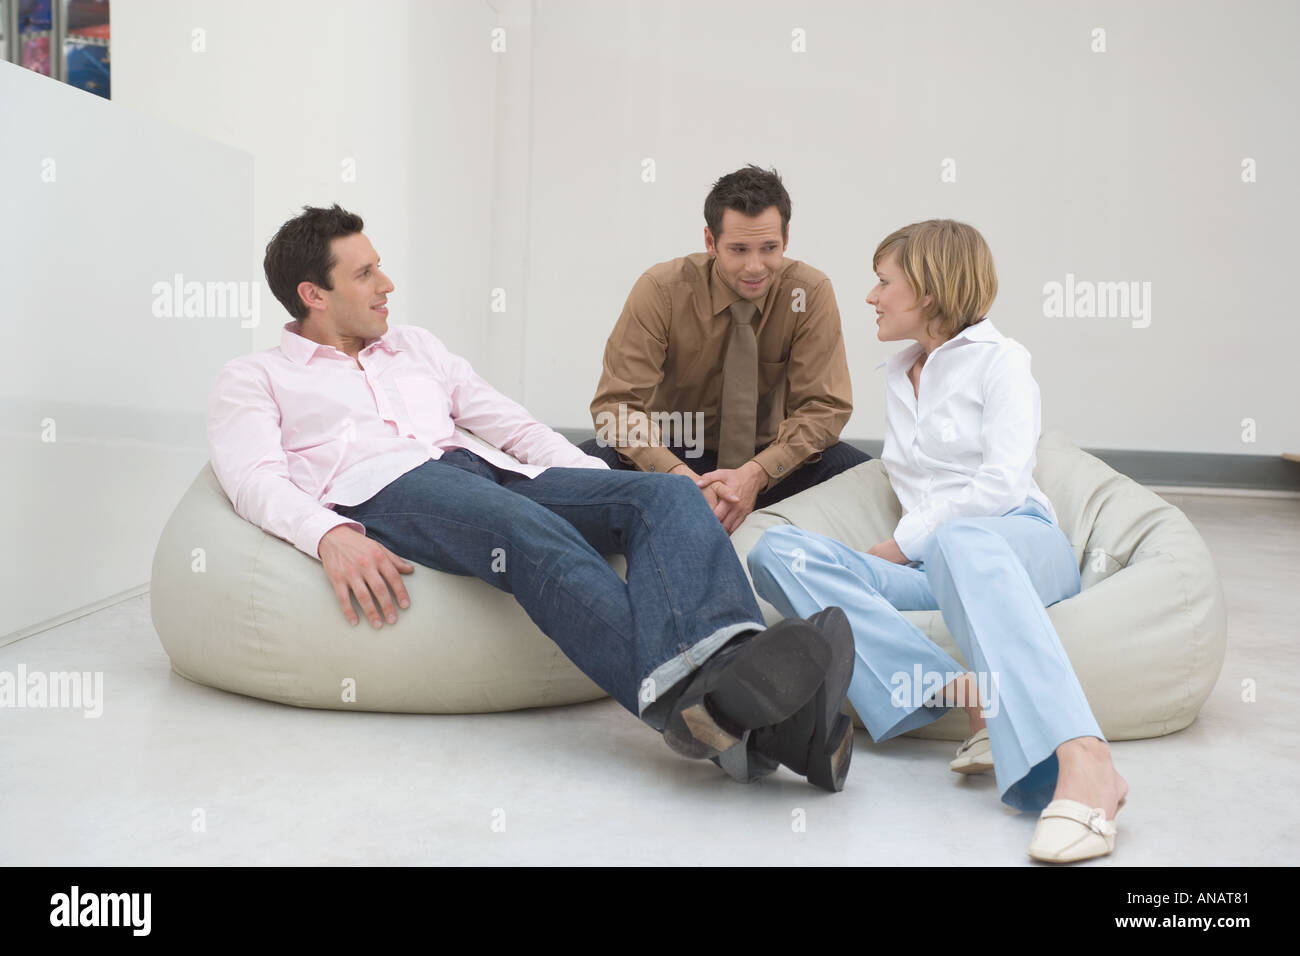 three people relaxing on bean bags and talking - Stock Image